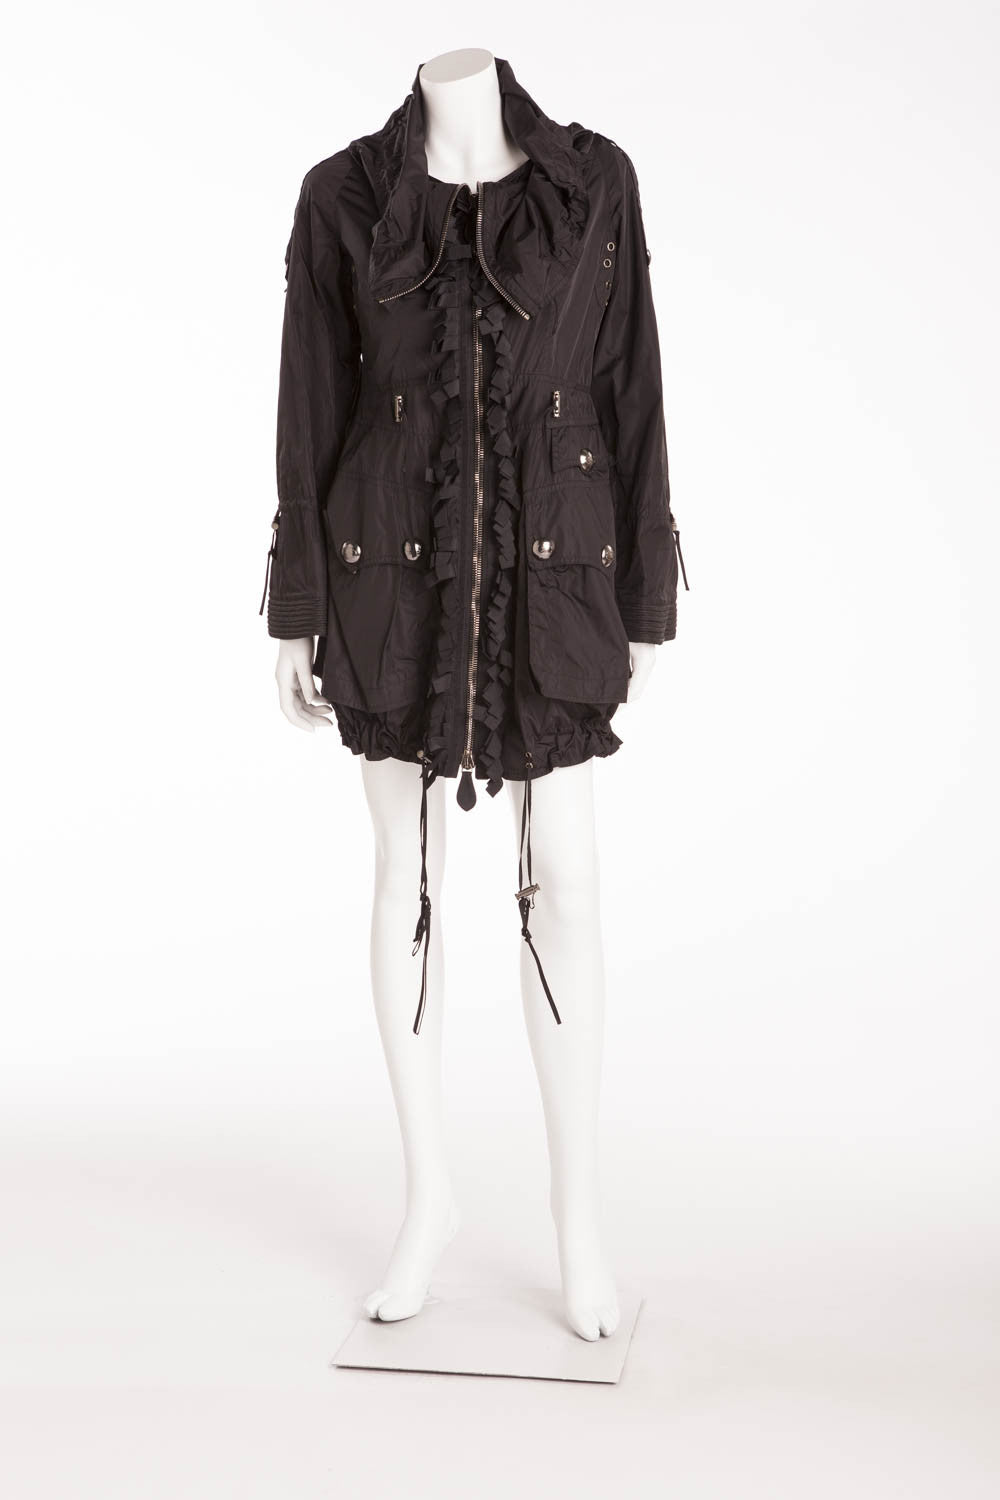 Burberry - As Seen on the 2007 Runway Collection, Black Zip Up Coat - IT 40